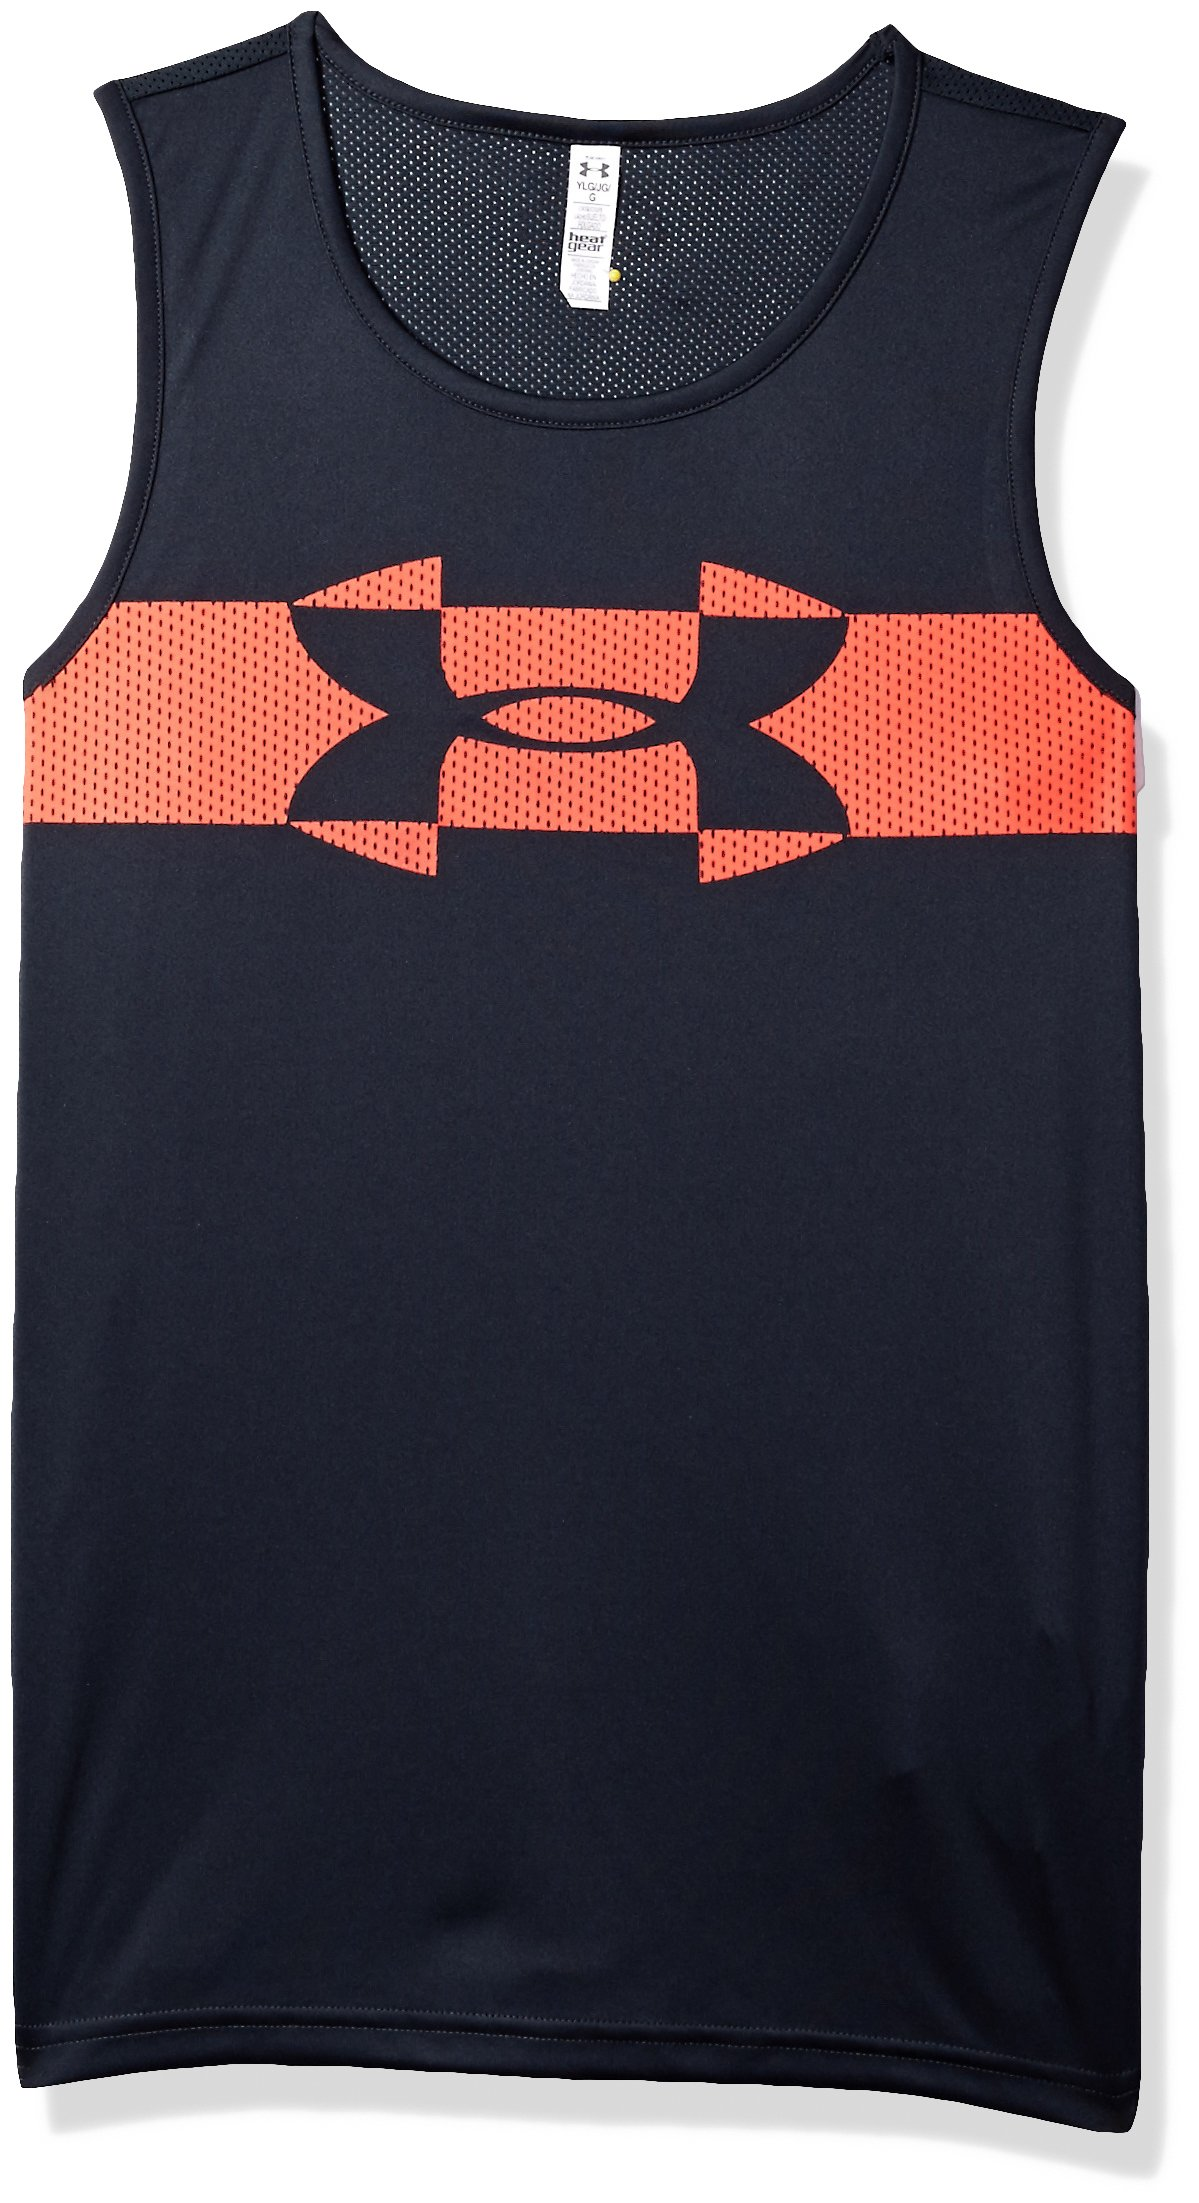 Under Armour Boys' Tech Tank, Stealth Gray (008)/Neon Coral, Youth X-Small